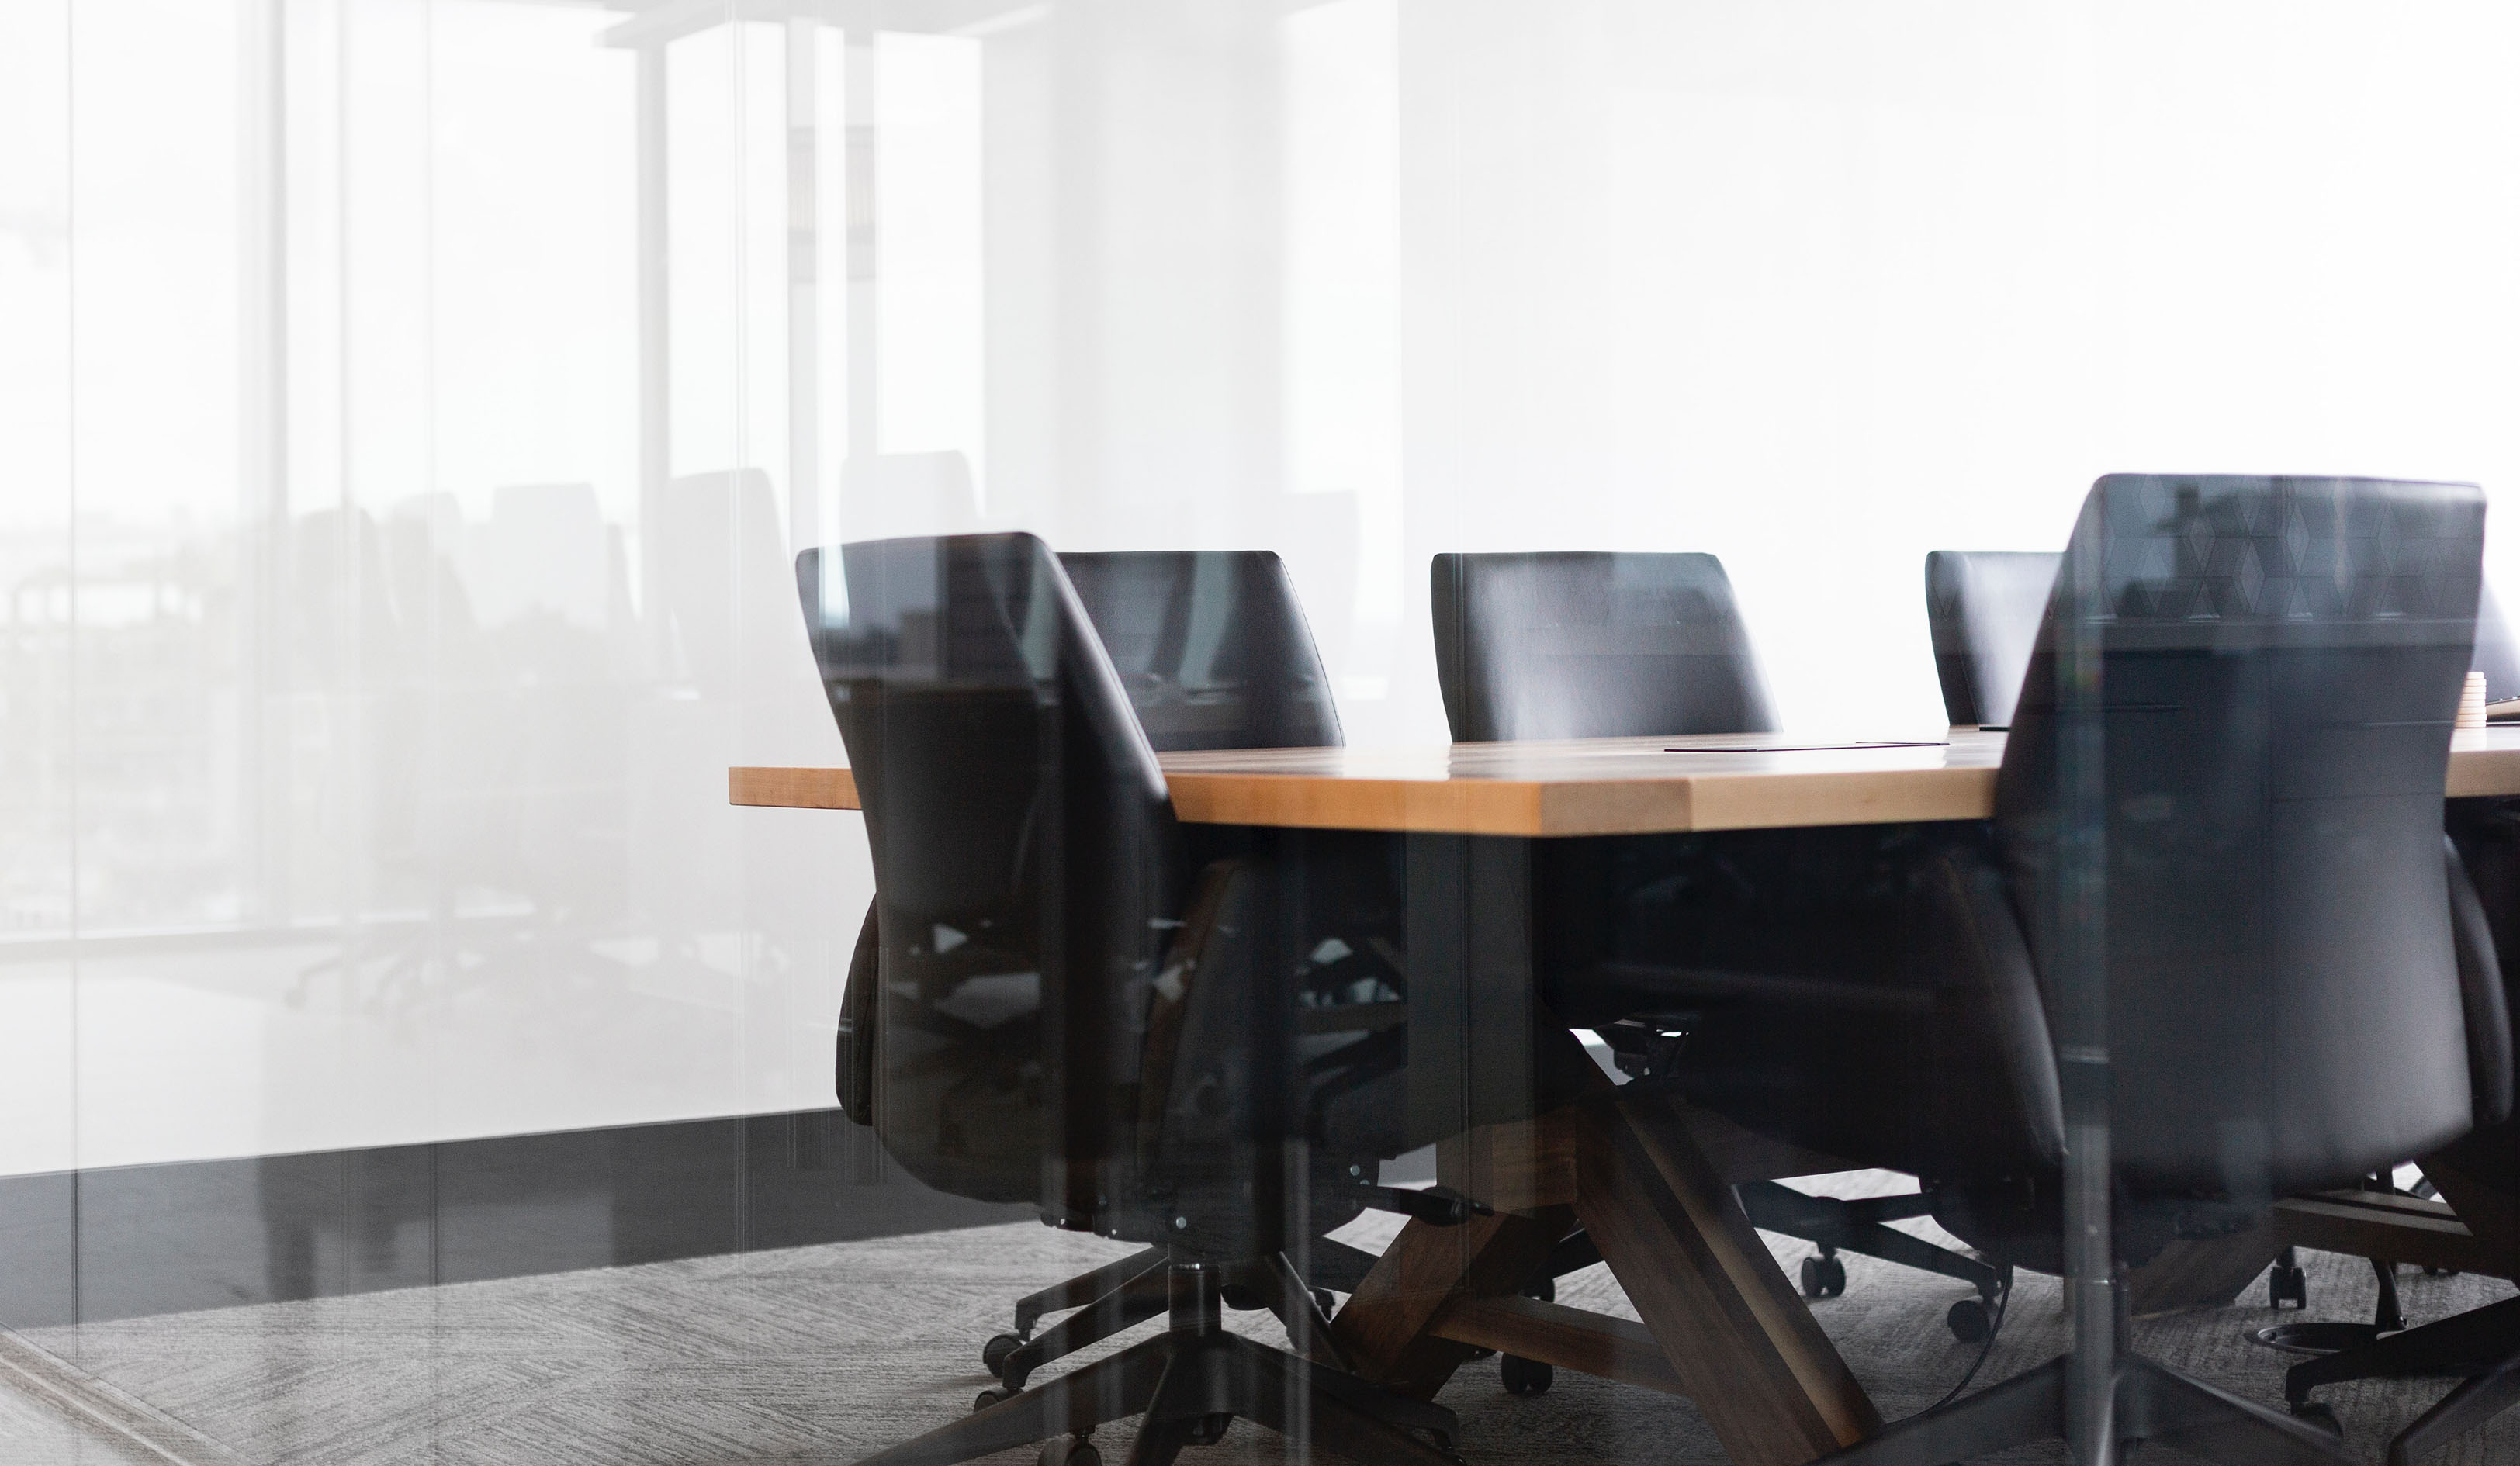 A coerced resignation: consequences for an employer